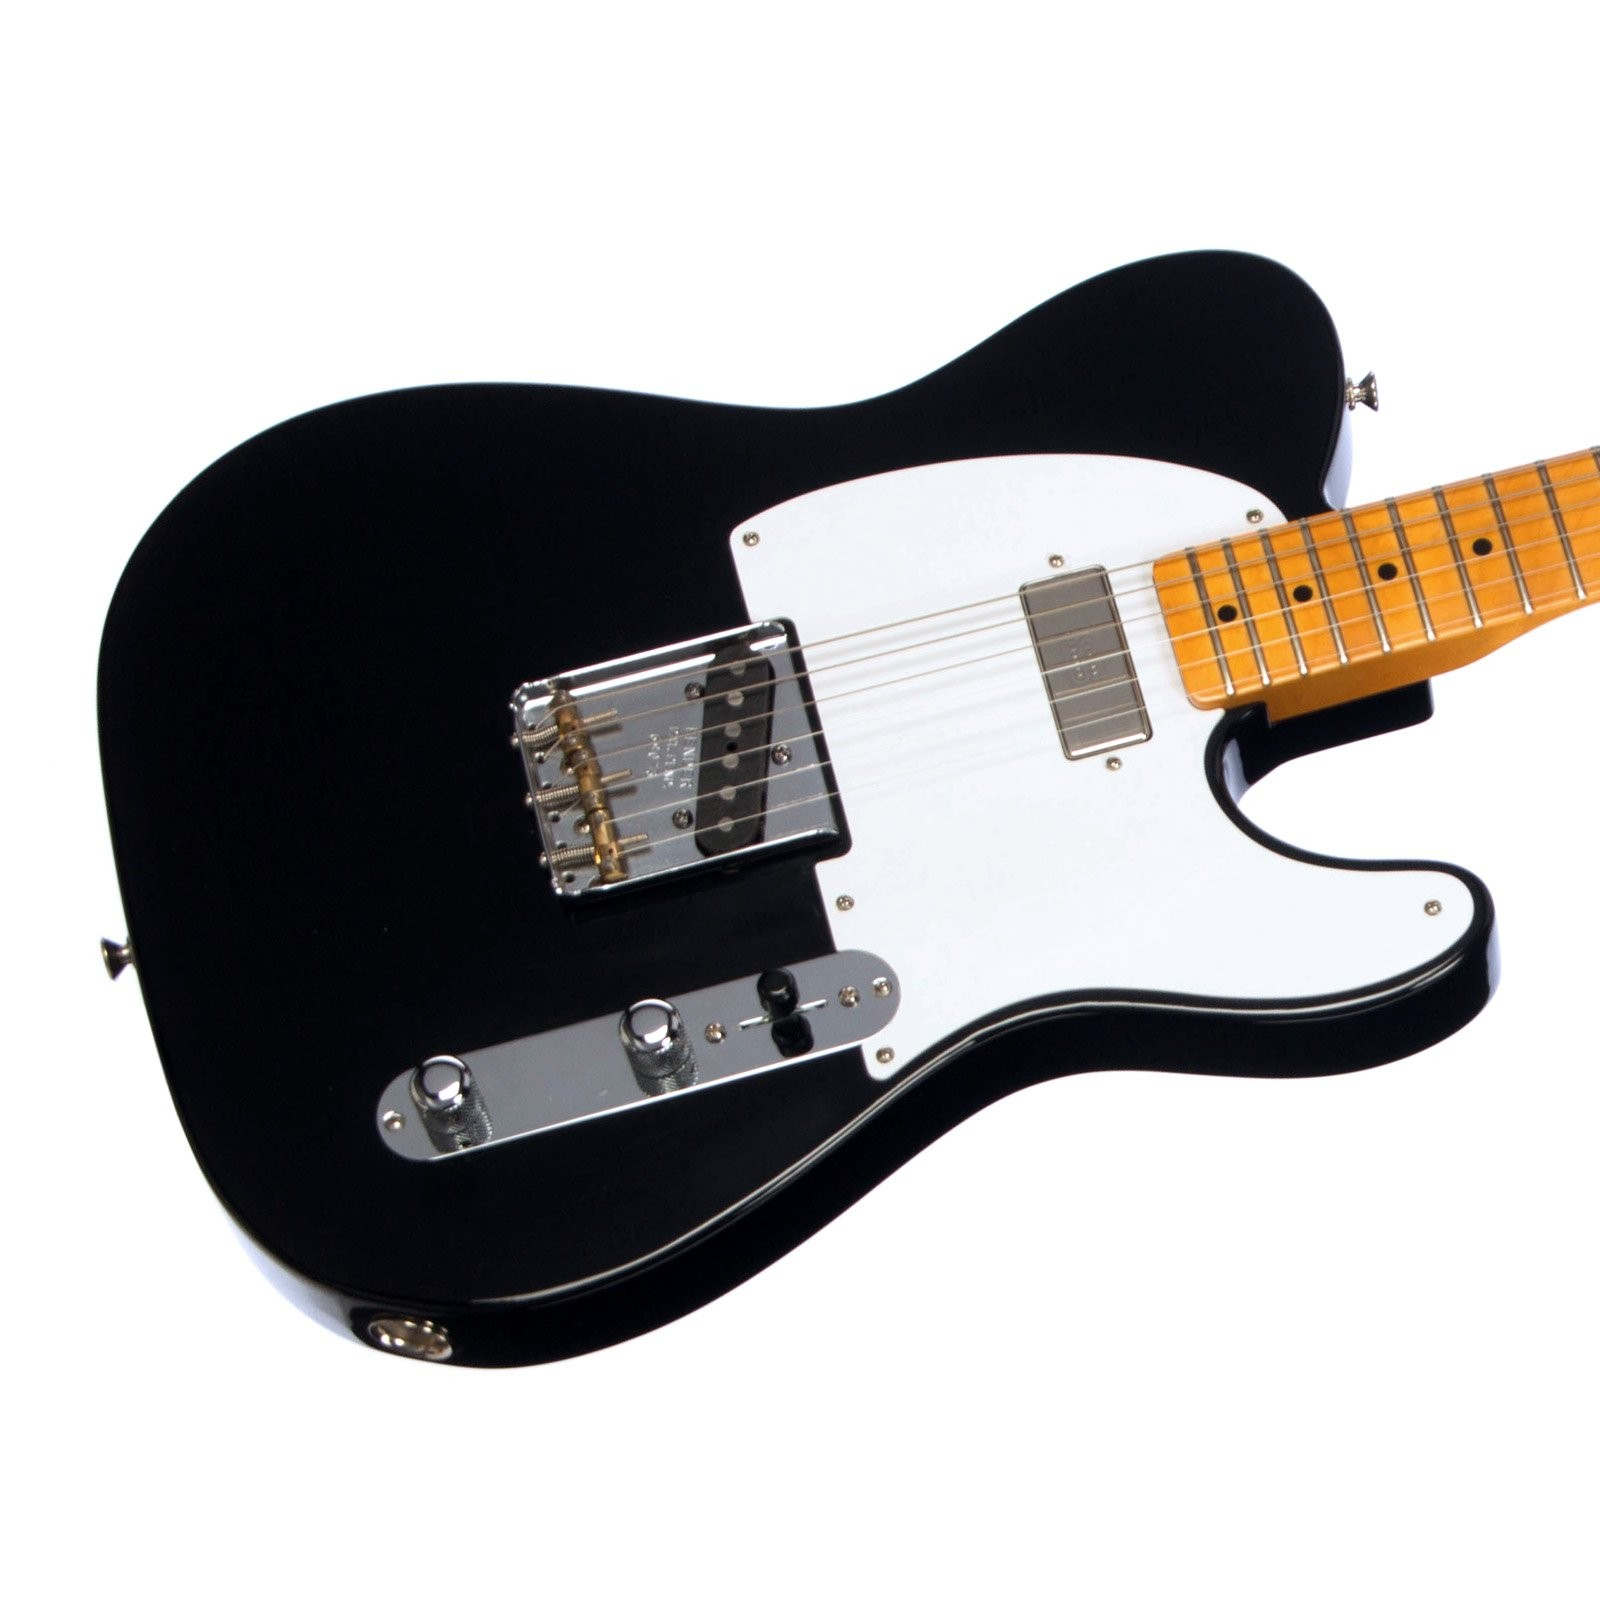 Schematic Of Fender Tele S-1 Switch Used Fender Vintage Hot Rod 52 Telecaster Black Of Schematic Of Fender Tele S-1 Switch